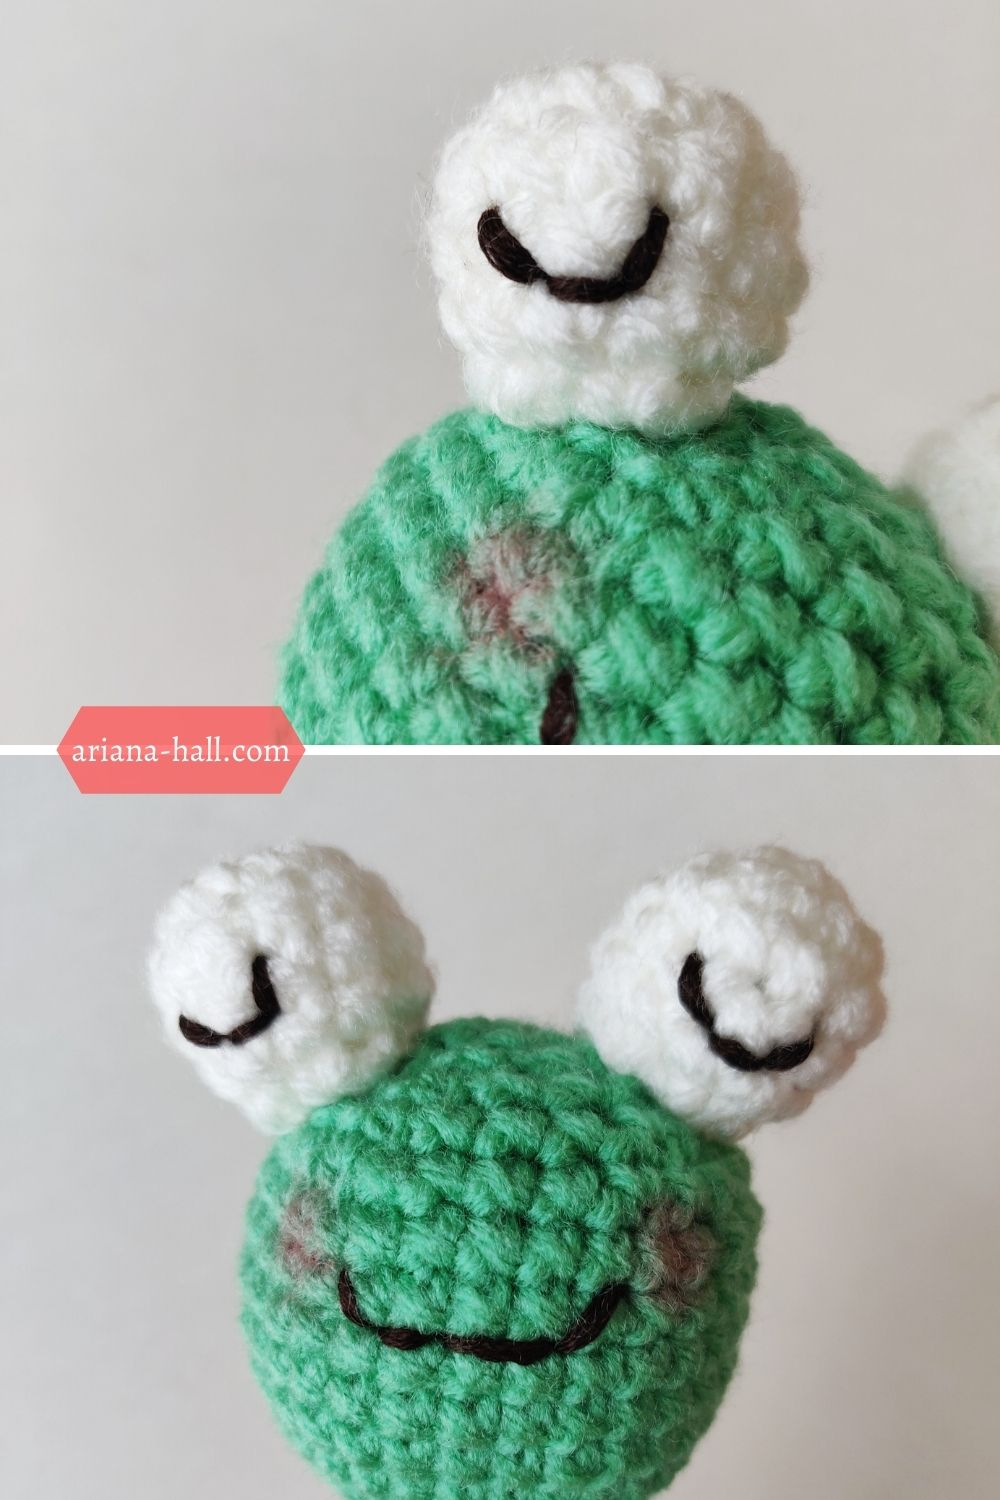 Crochet green frog pattern by ariana hall